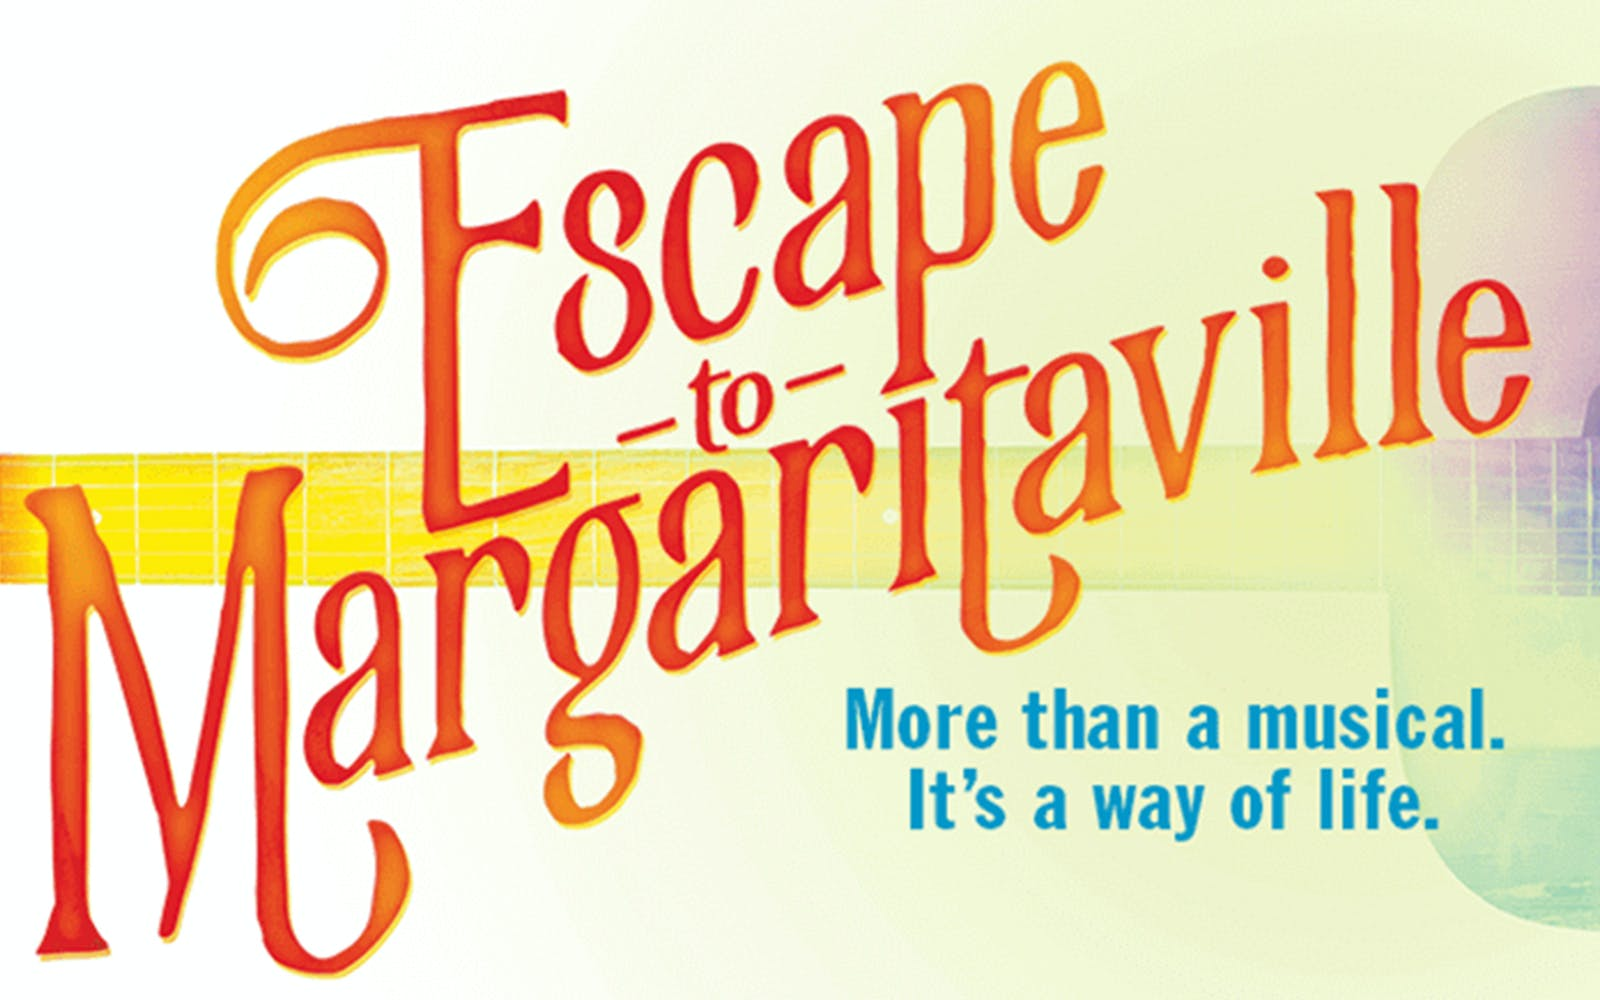 Best Broadway Shows - 2018 - escape to Margaritaville